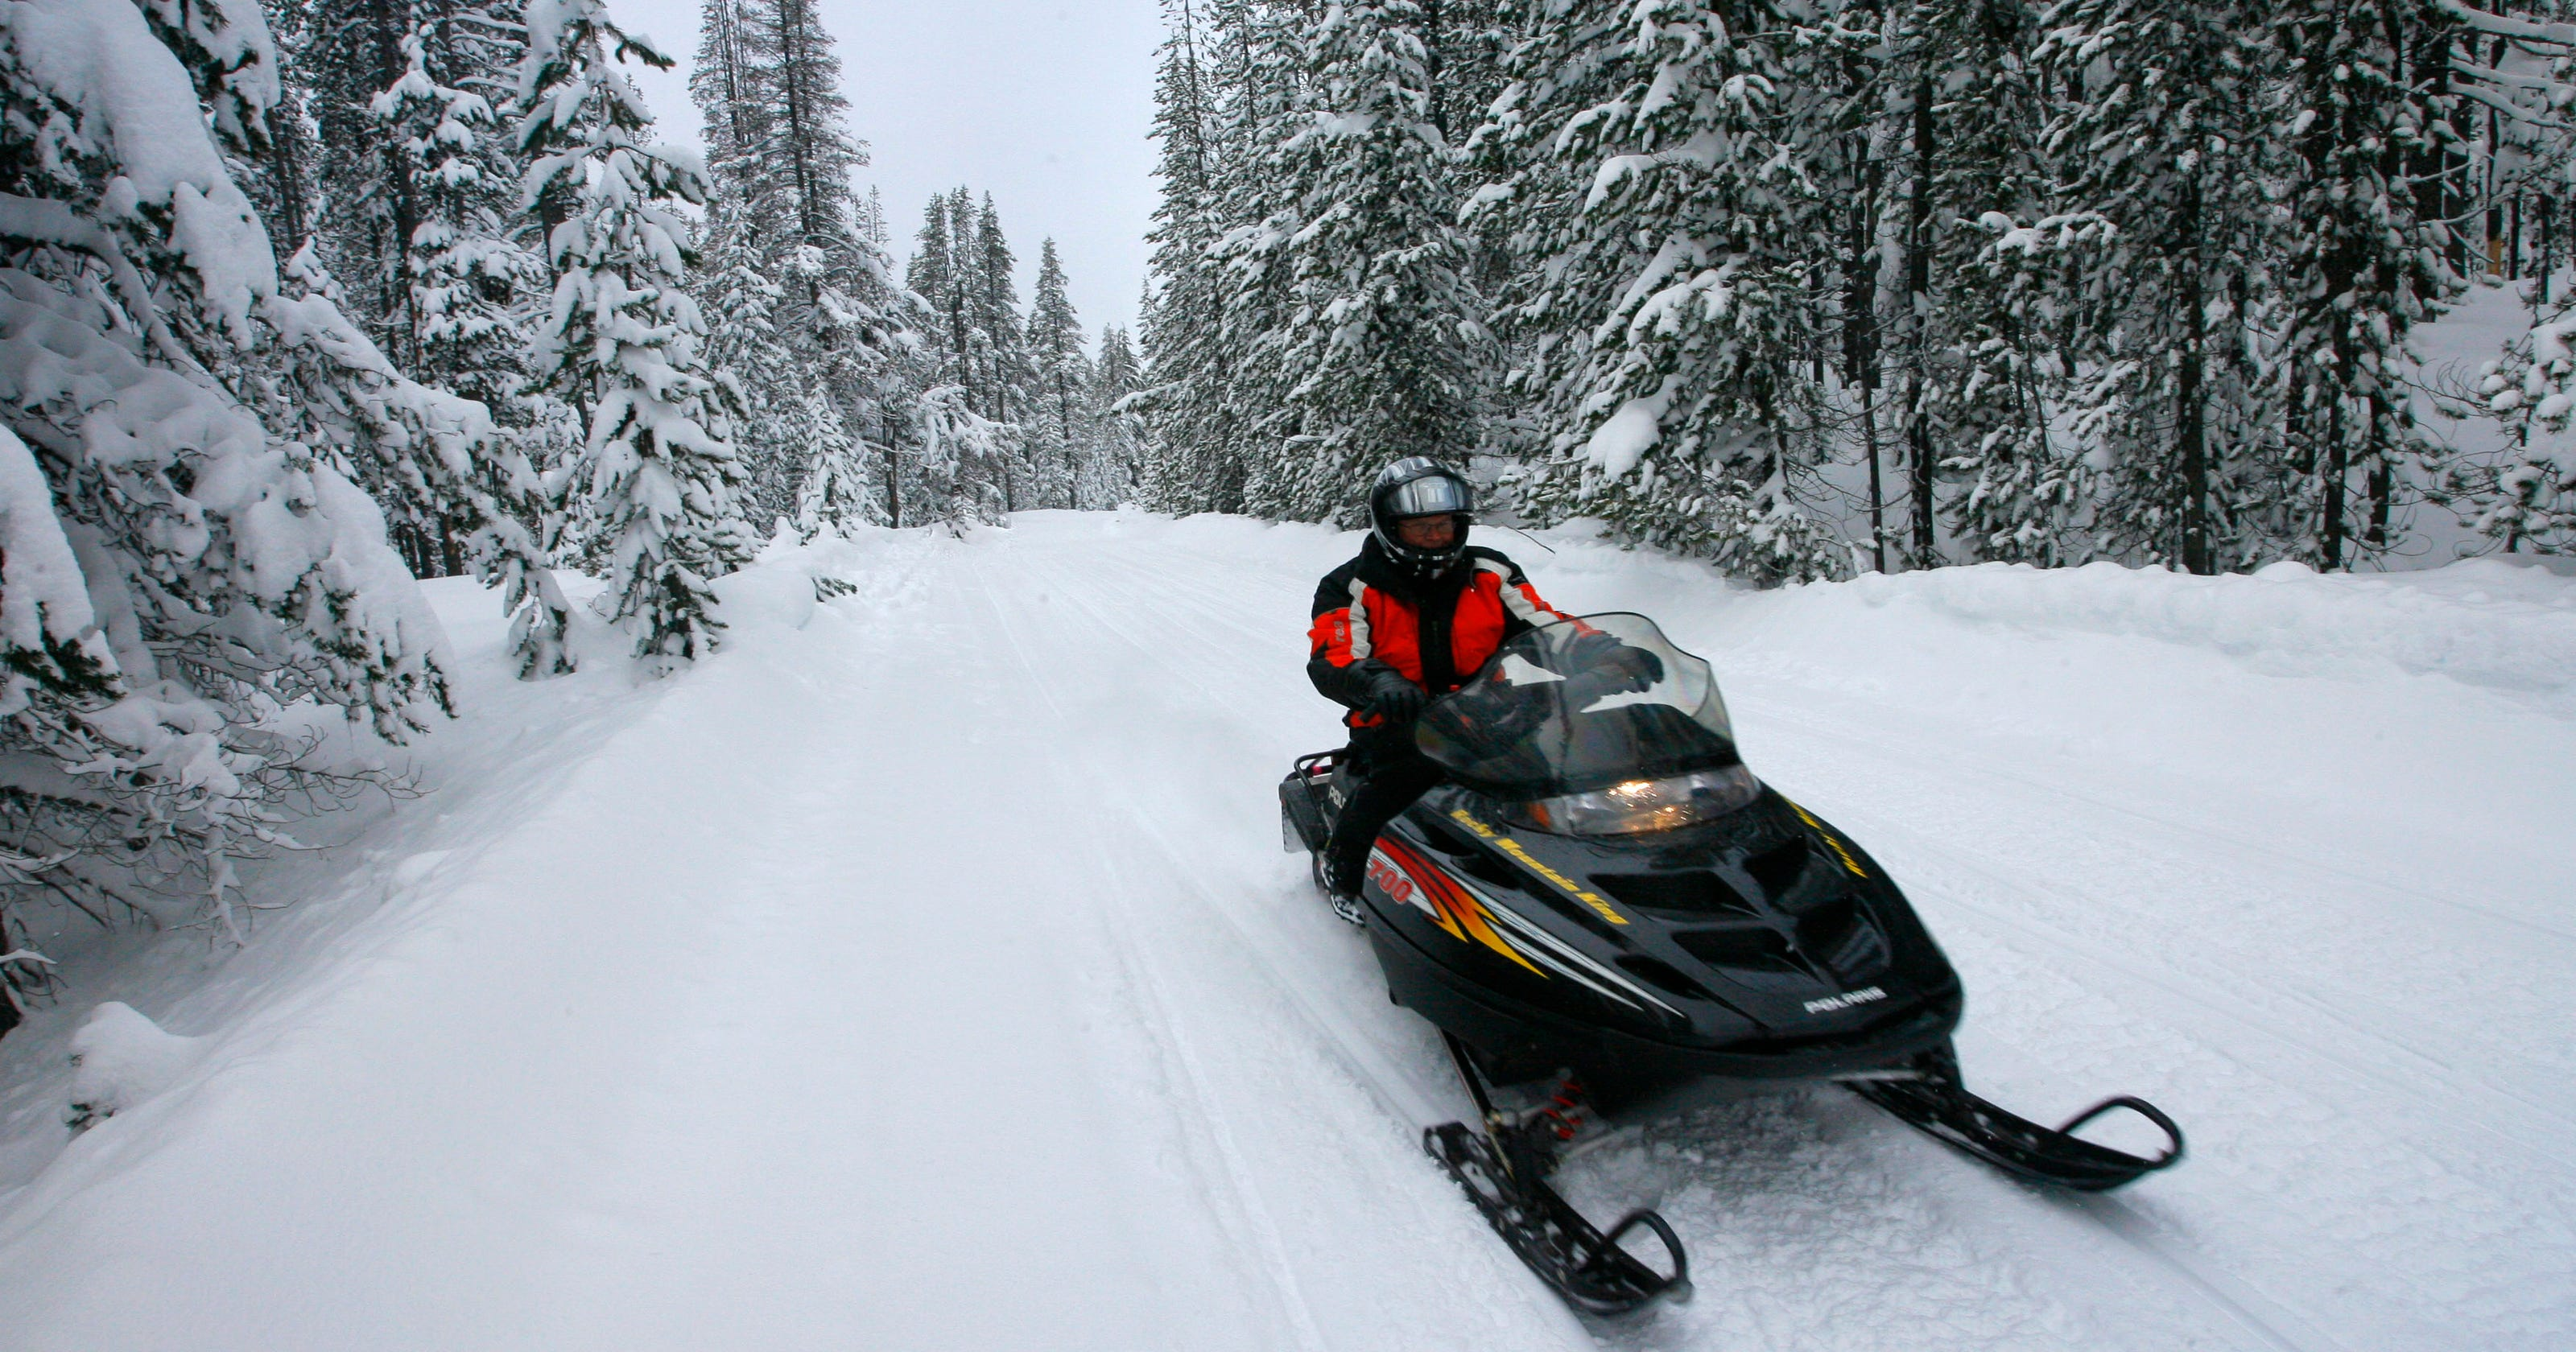 cf910d8e4aa New snowmobile rules could impact Oregon